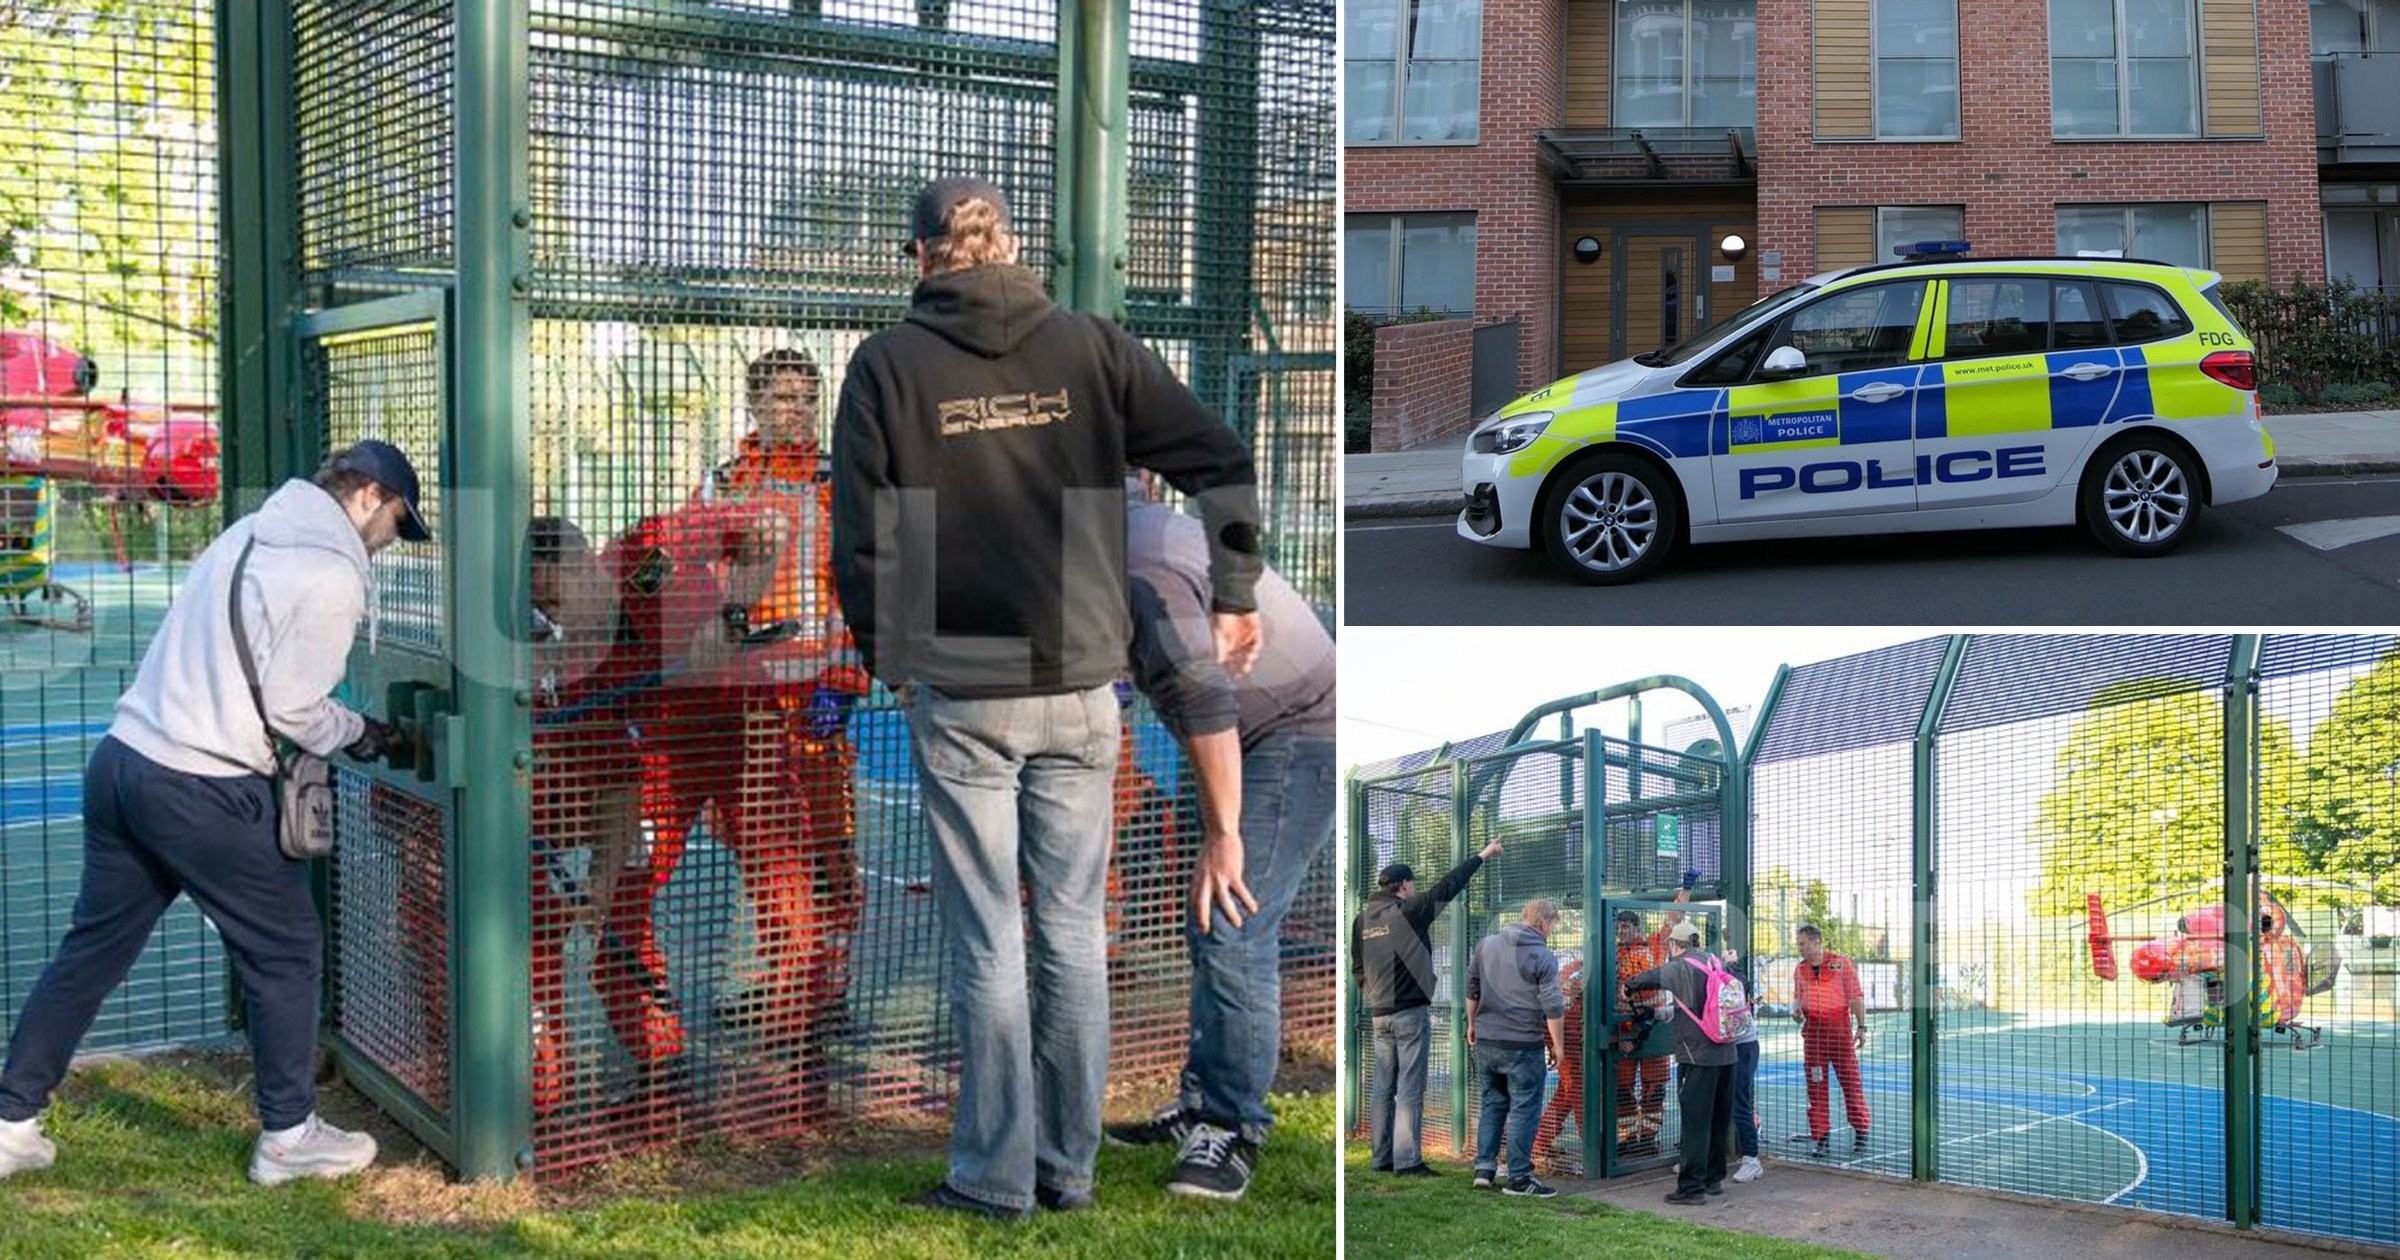 Air ambulance crew trapped in locked basketball court after rushing to help child, 5